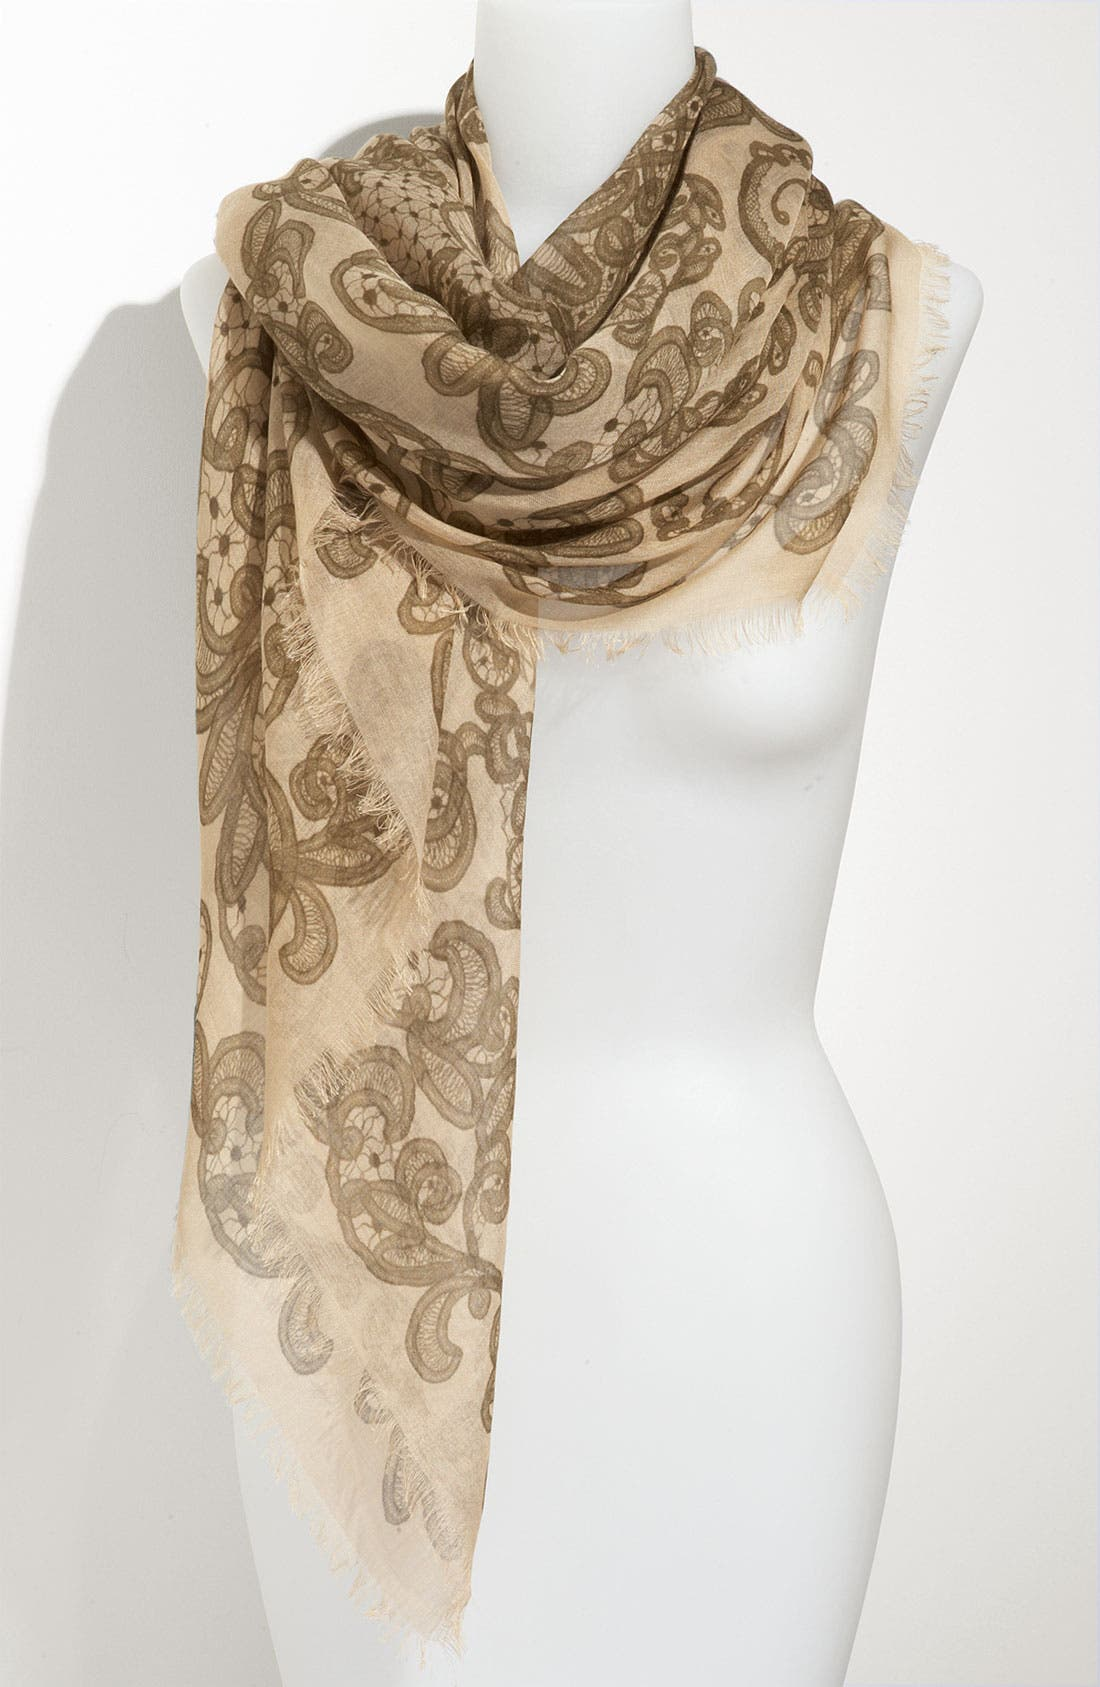 Main Image - Alexander McQueen 'Lace Skull' Pashmina